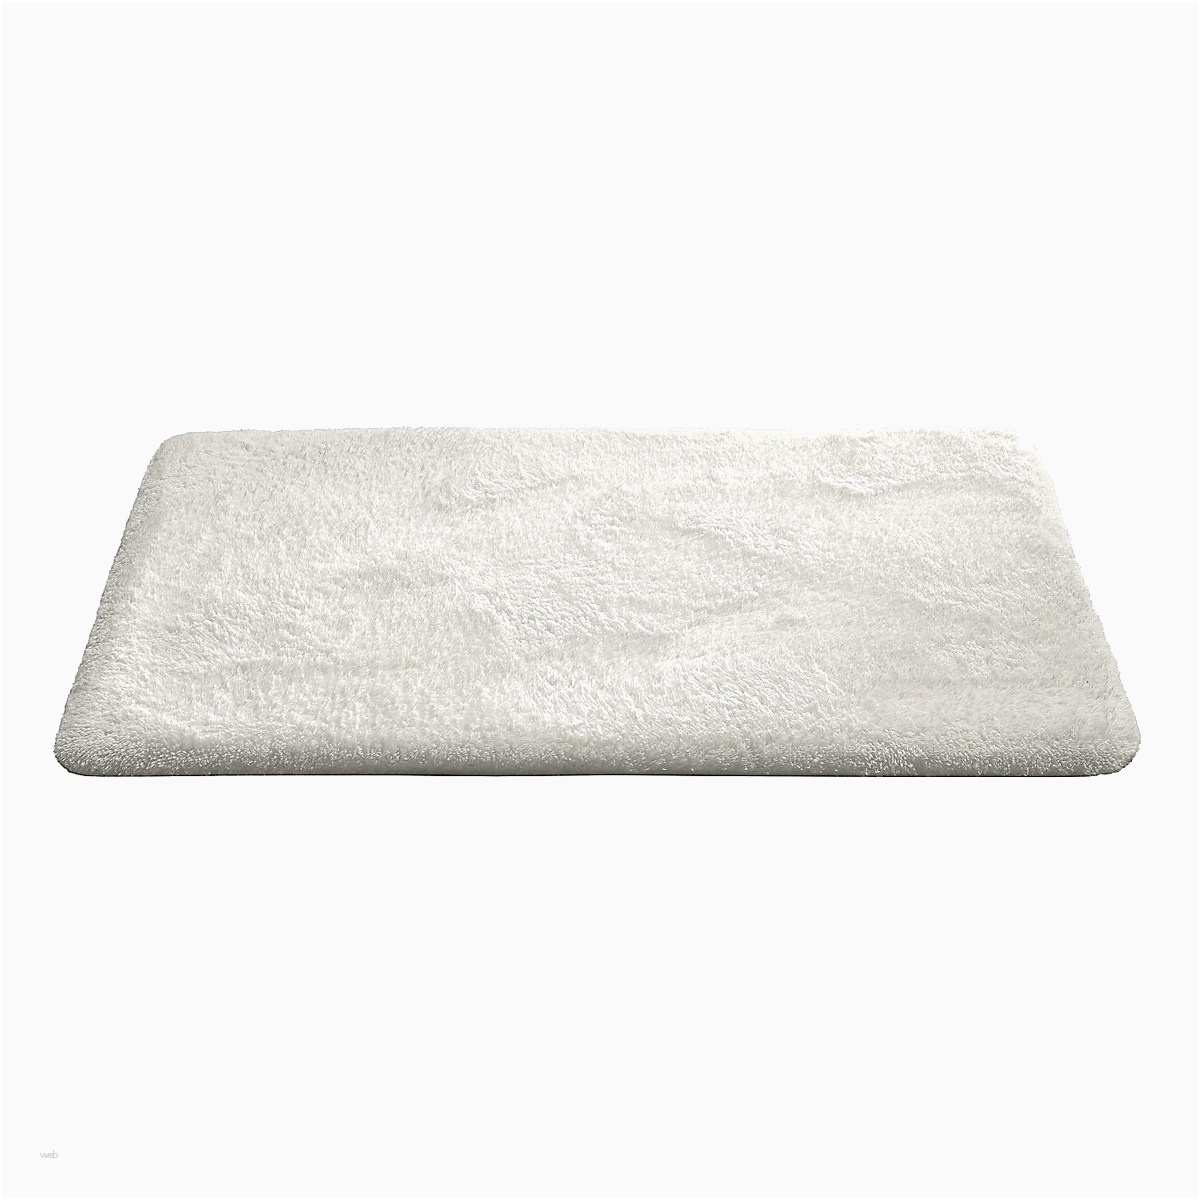 Tapis contour wc leroy merlin